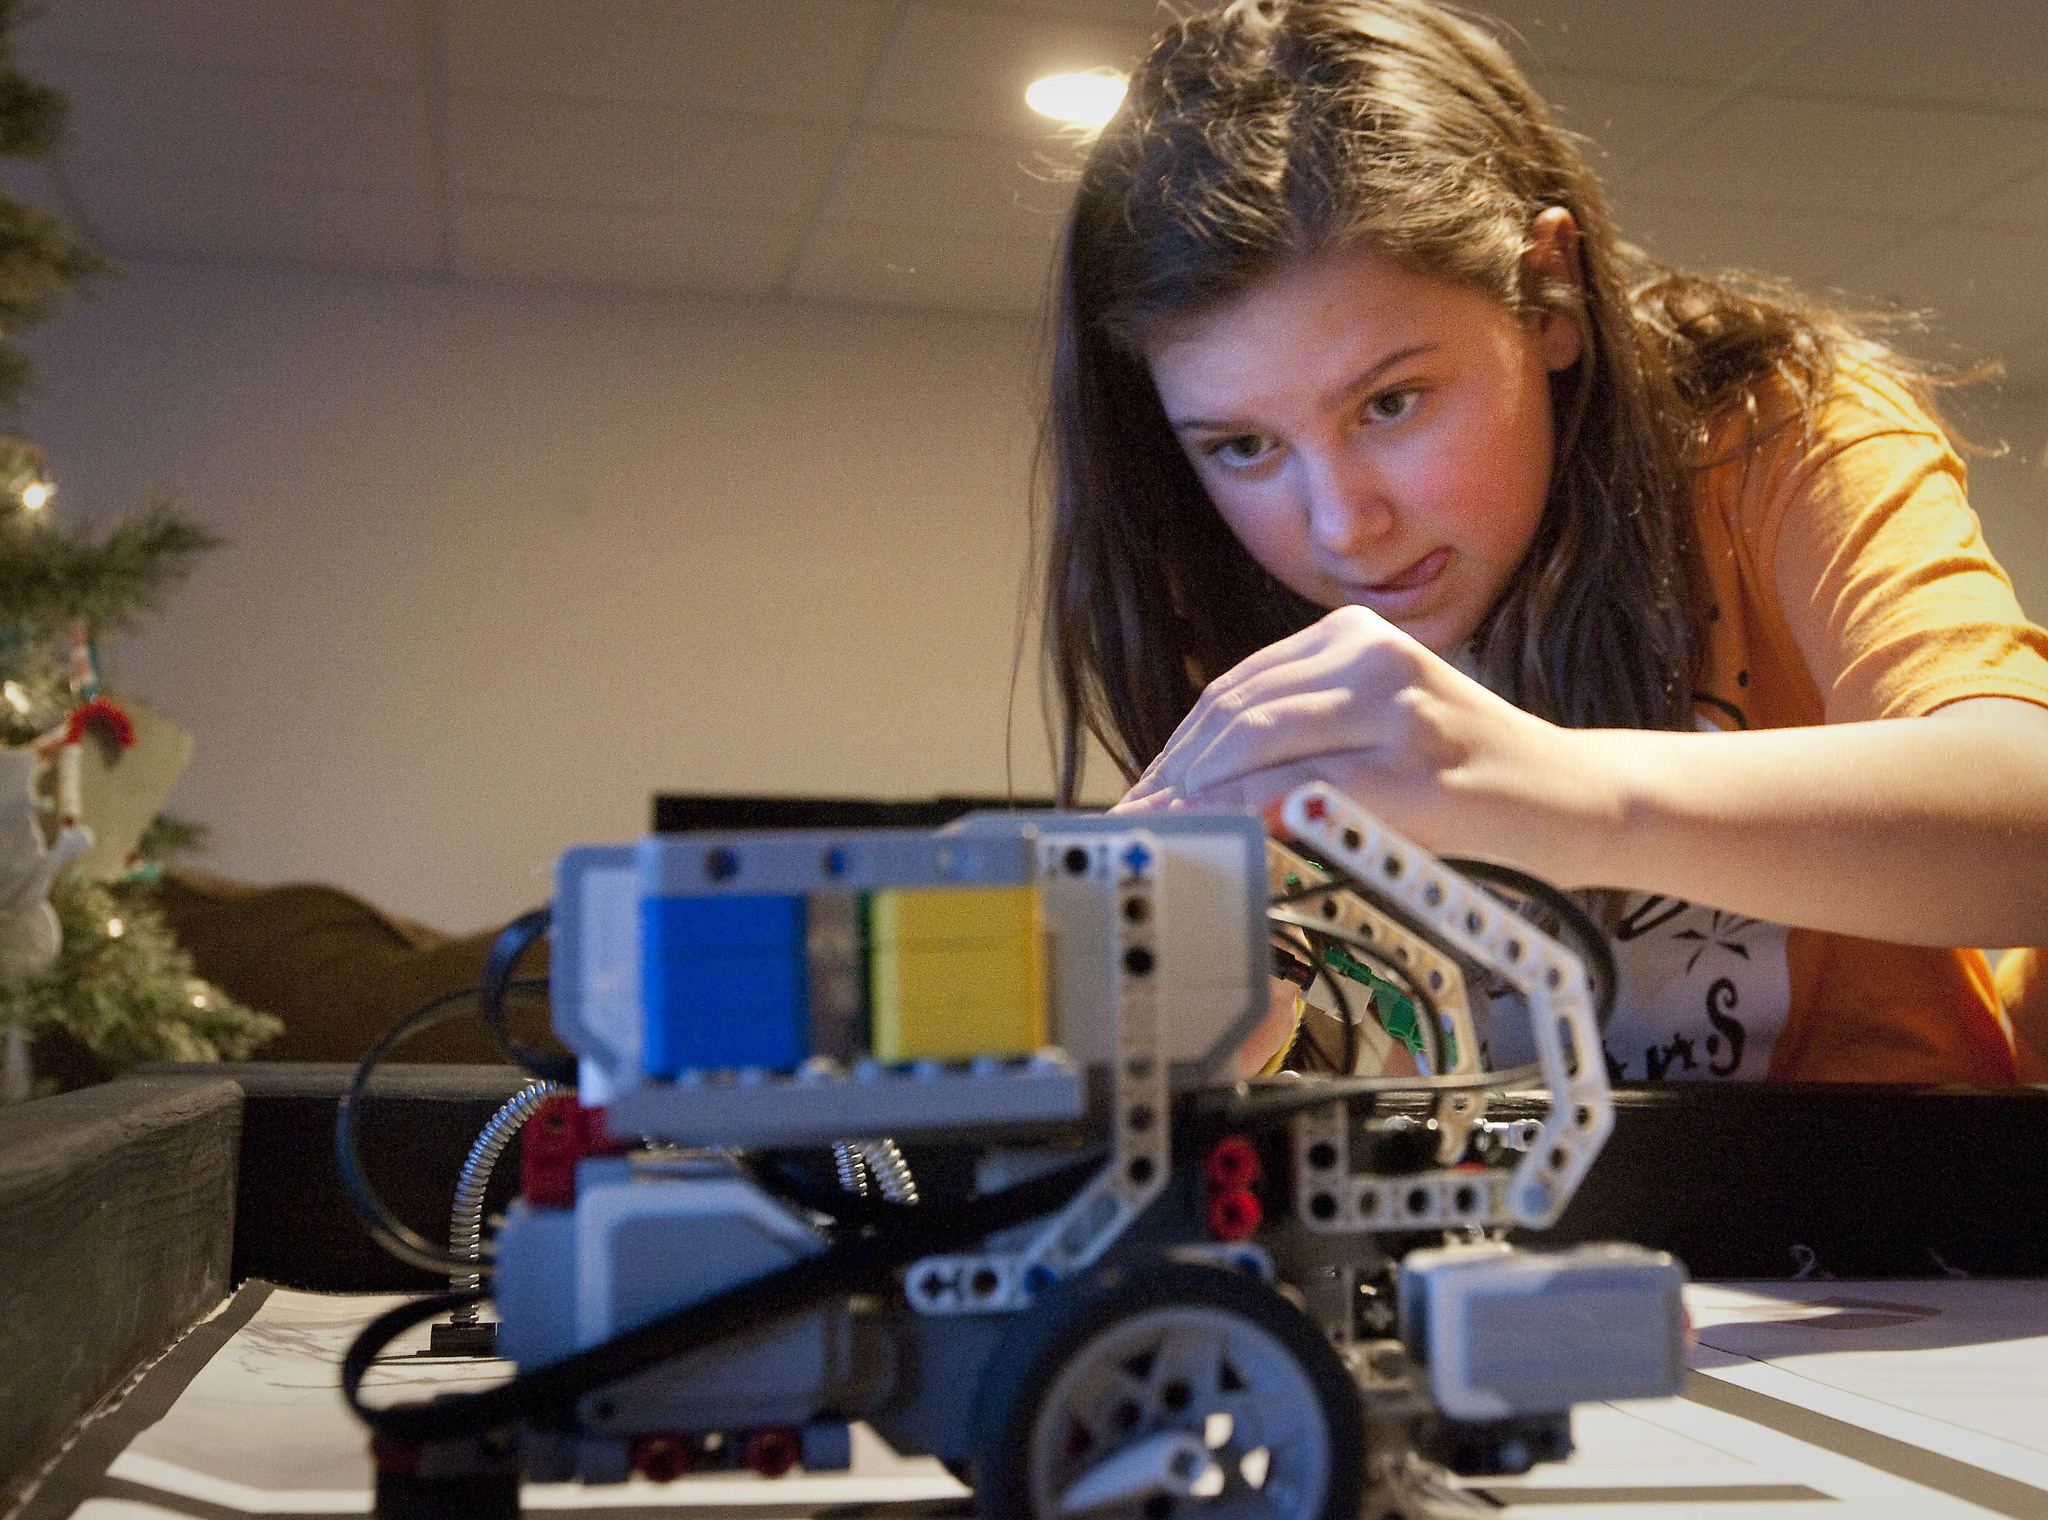 STUDY: Girls Use Tech Better Than Boys for Problem-solving